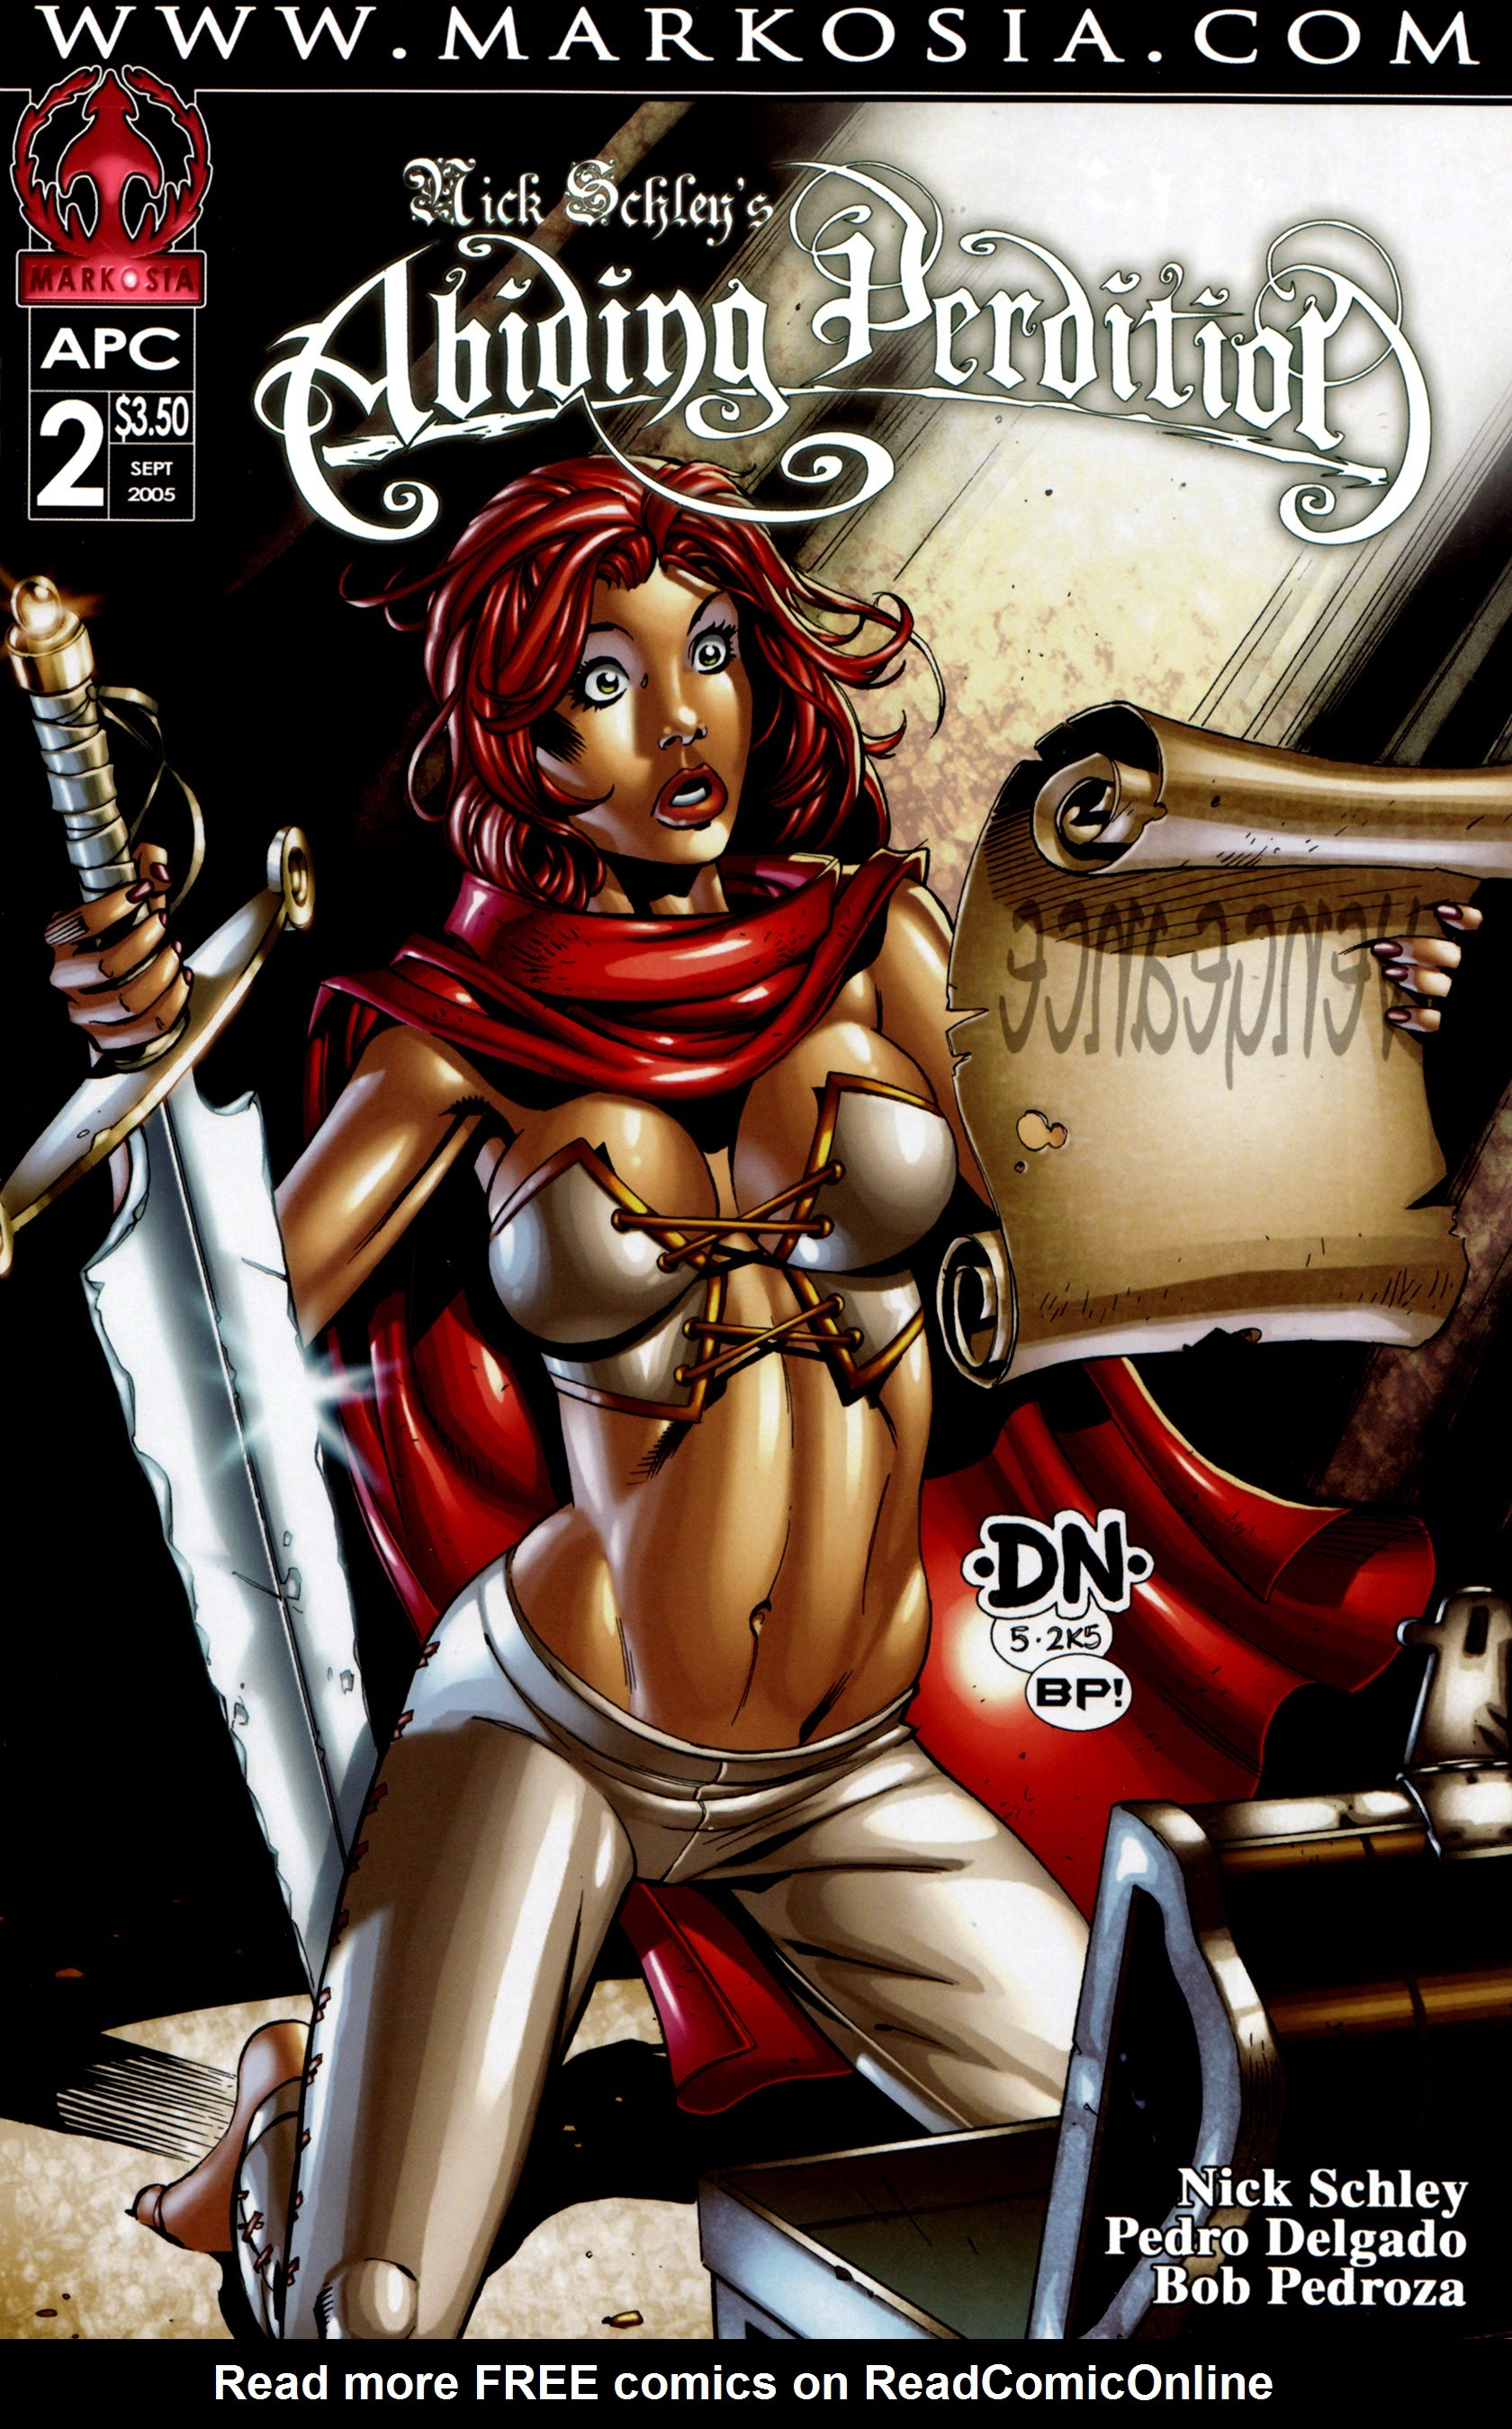 Read online Abiding Perdition comic -  Issue #2 - 2